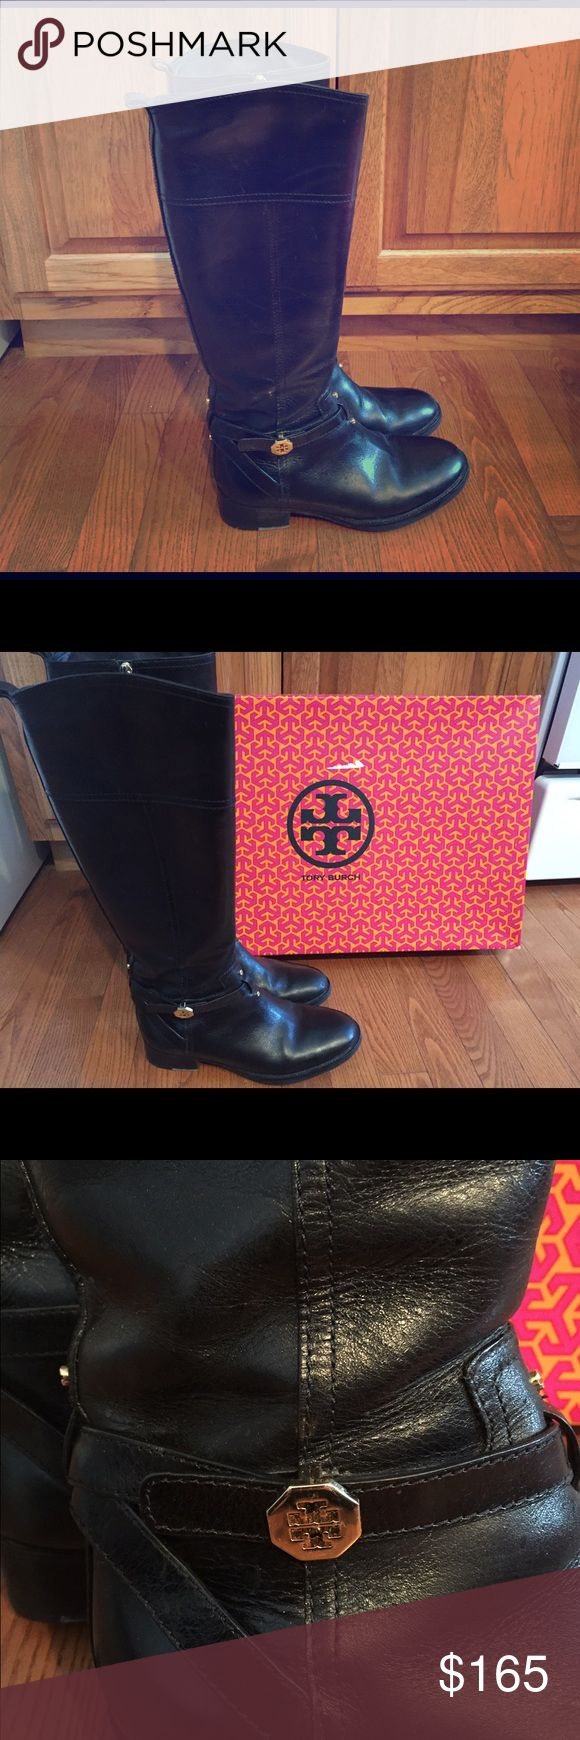 Tory Burch Brita Riding Boot, black, size 7 Gorgeous leather riding boots with gold logo detail. Still tons of wear left. Does not include box. No trades. Tory Burch Shoes Heeled Boots